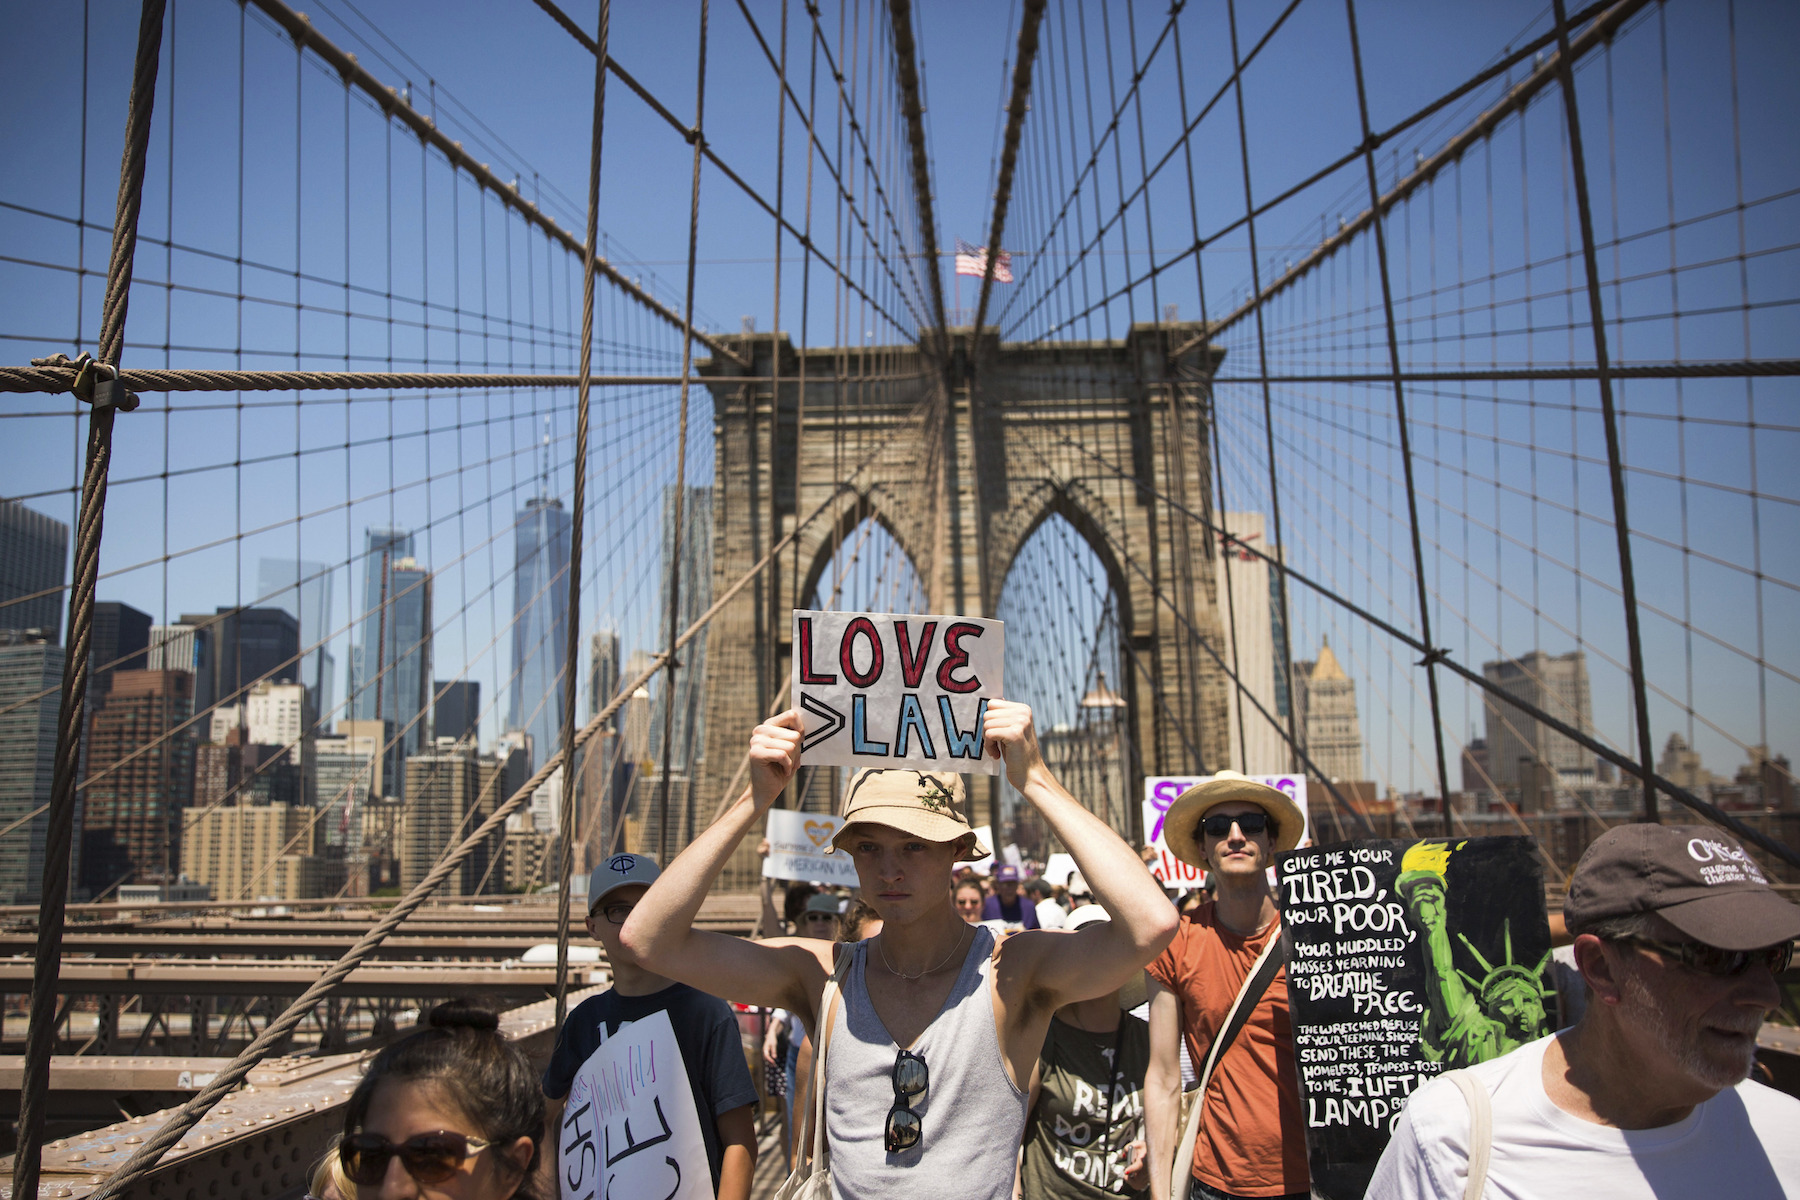 <div class='meta'><div class='origin-logo' data-origin='AP'></div><span class='caption-text' data-credit='AP Photo/Kevin Hagen'>Activists carry signs across the Brooklyn Bridge during a rally to protest the Trump administration's immigration policies Saturday, June 30, 2018, in New York, New York.</span></div>